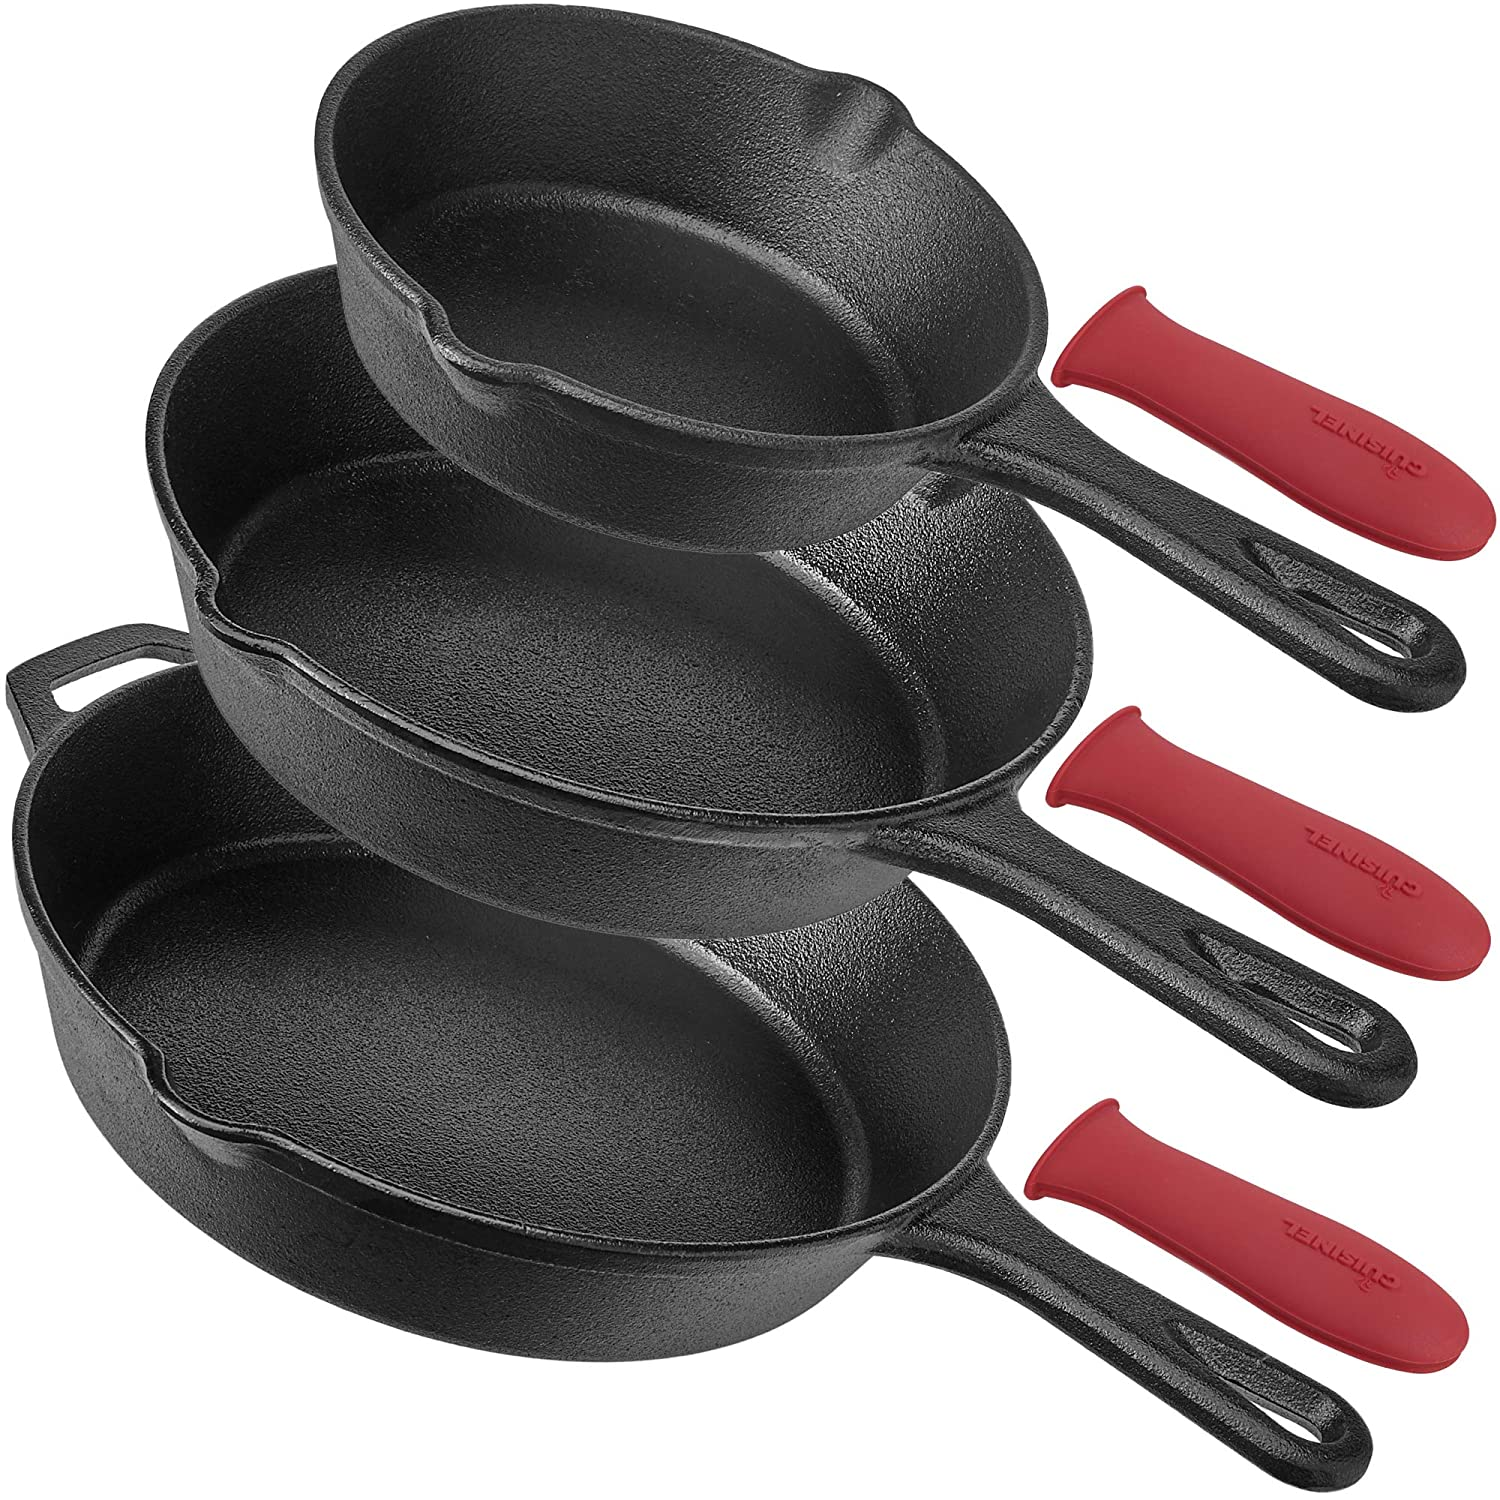 Pre-Seasoned Cast Iron Skillet 3-Piece Chef Set (6-Inch 8-Inch and 10-Inch) Oven Safe Cookware | 3 Heat-Resistant Holders | Indoor and Outdoor Use | Grill, Stovetop, Induction Safe